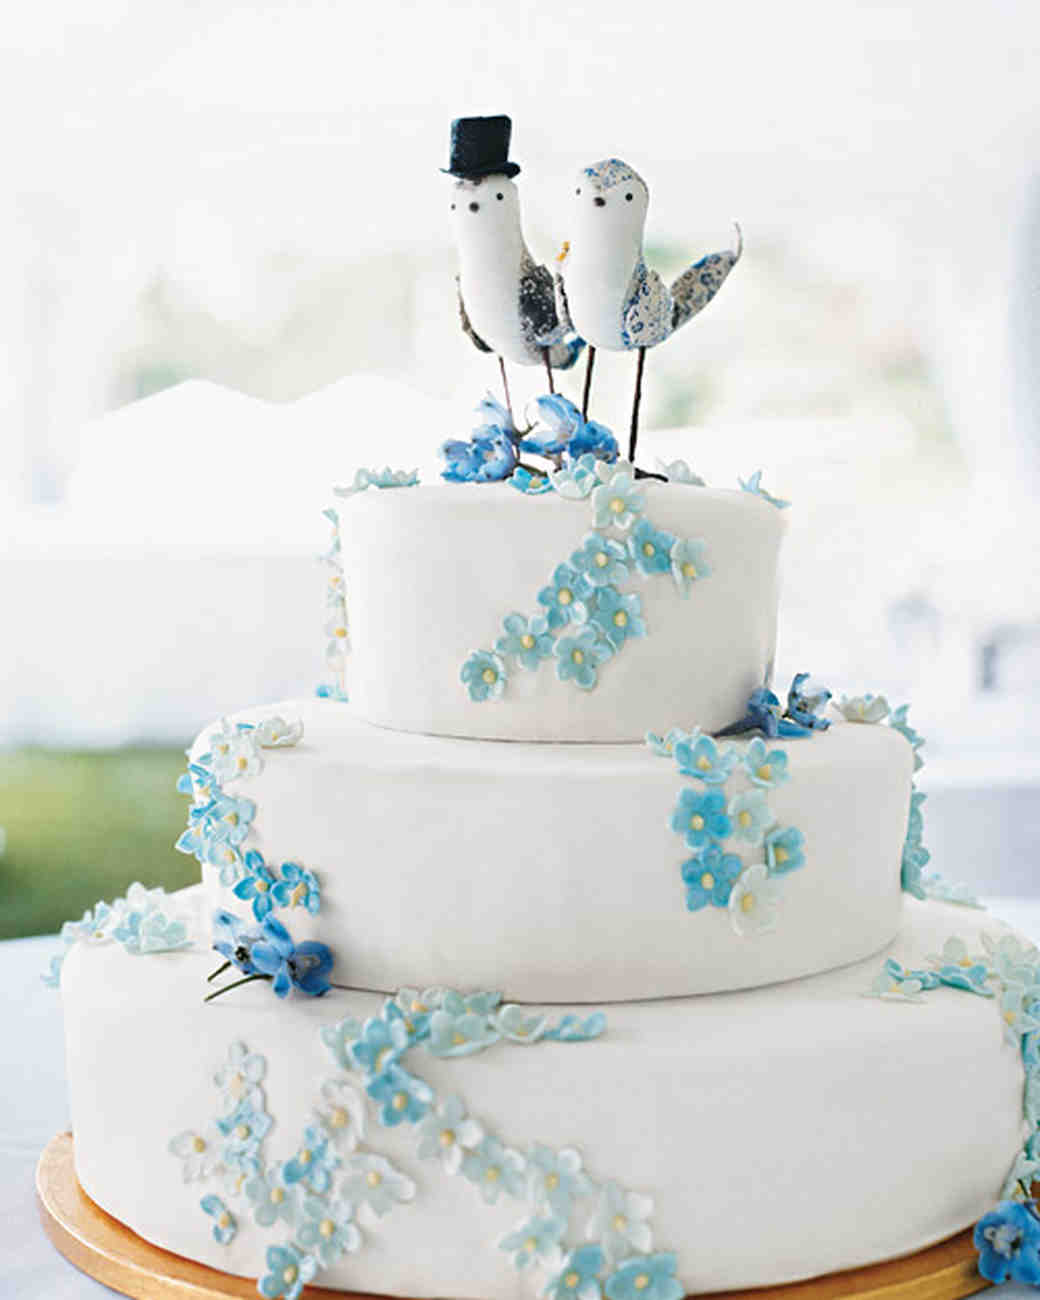 mwa103344_sum08_birds_on_cake.jpg